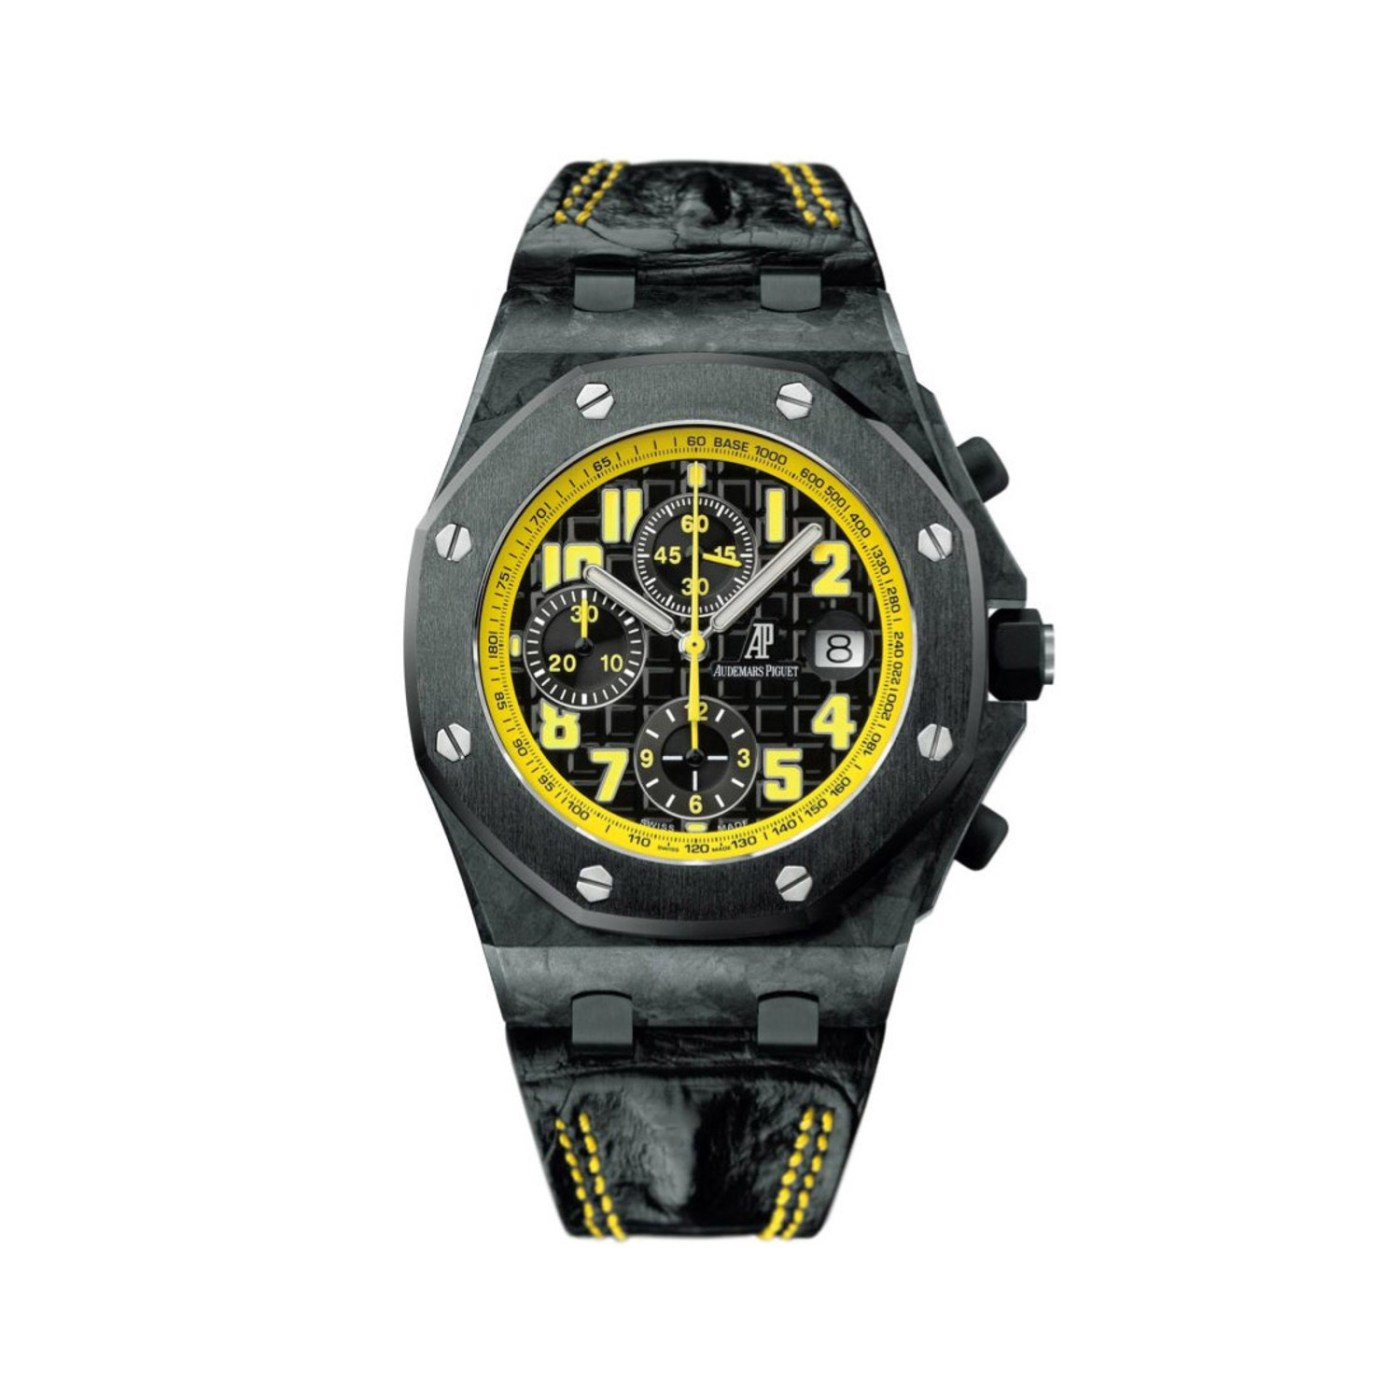 Audemars Piguet Forged Carbon Royal Oak Offshore Chronograph